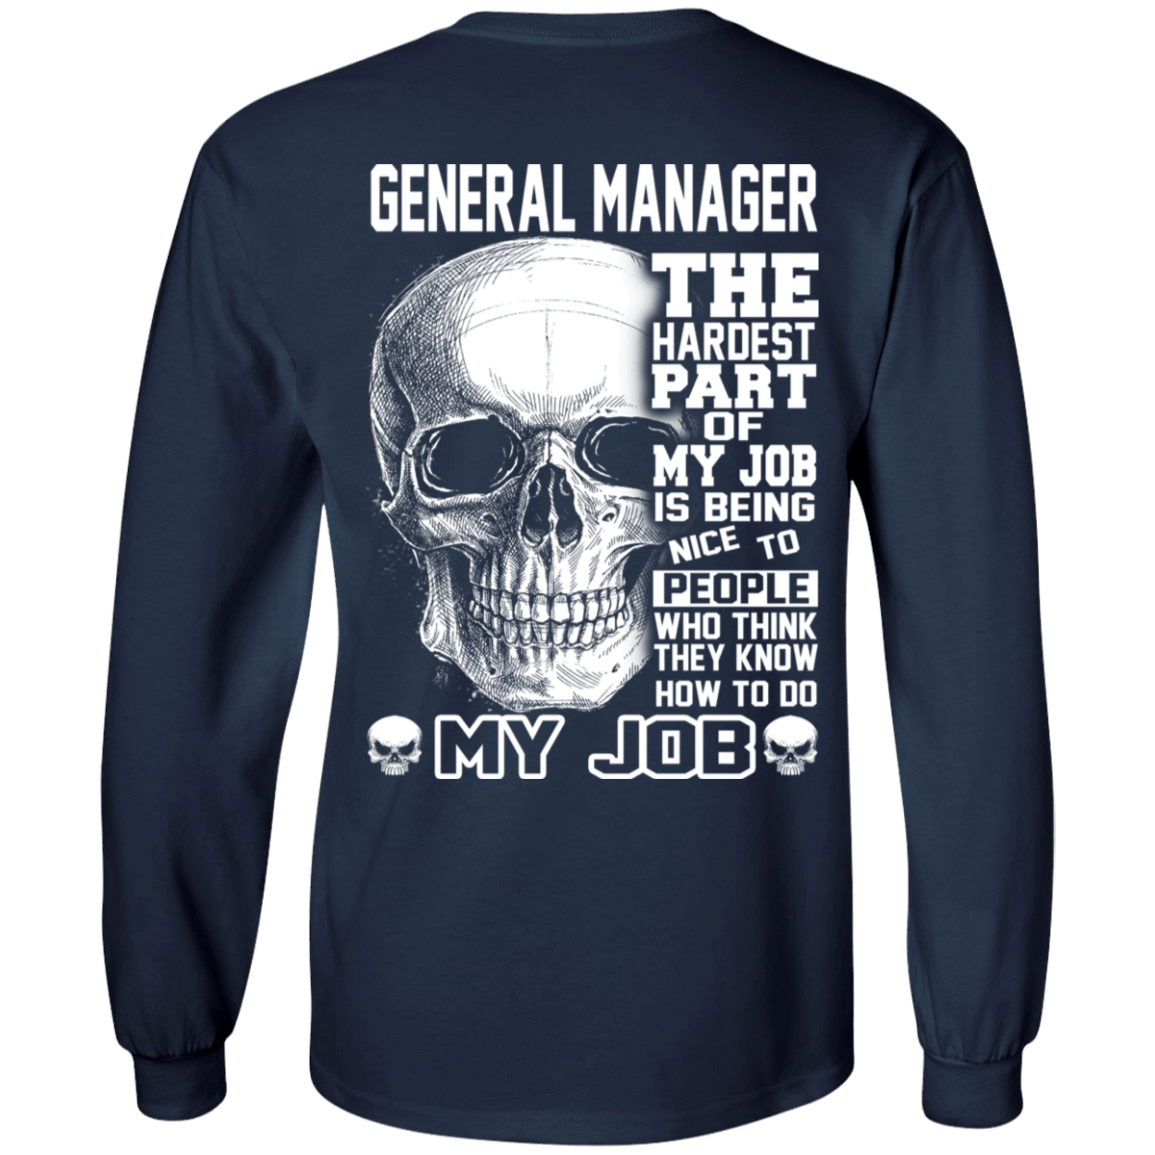 General Manager The Hardest Part Of My Job 30-184-71609228-331 - Tee Ript